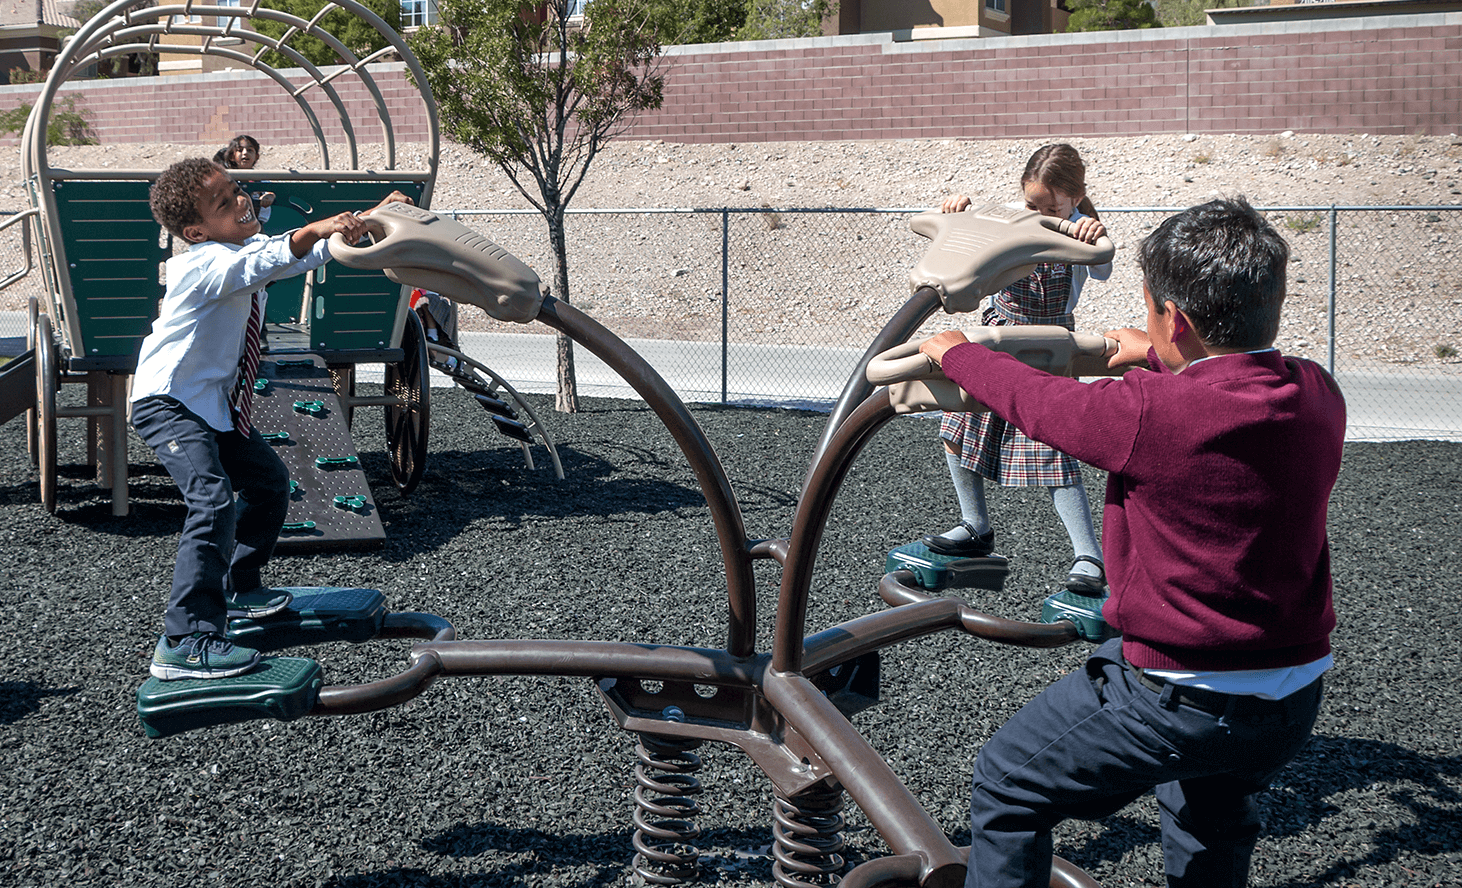 Playground Seesaw | Challenger School - Summerlin | Private School In Las Vegas, Nevada